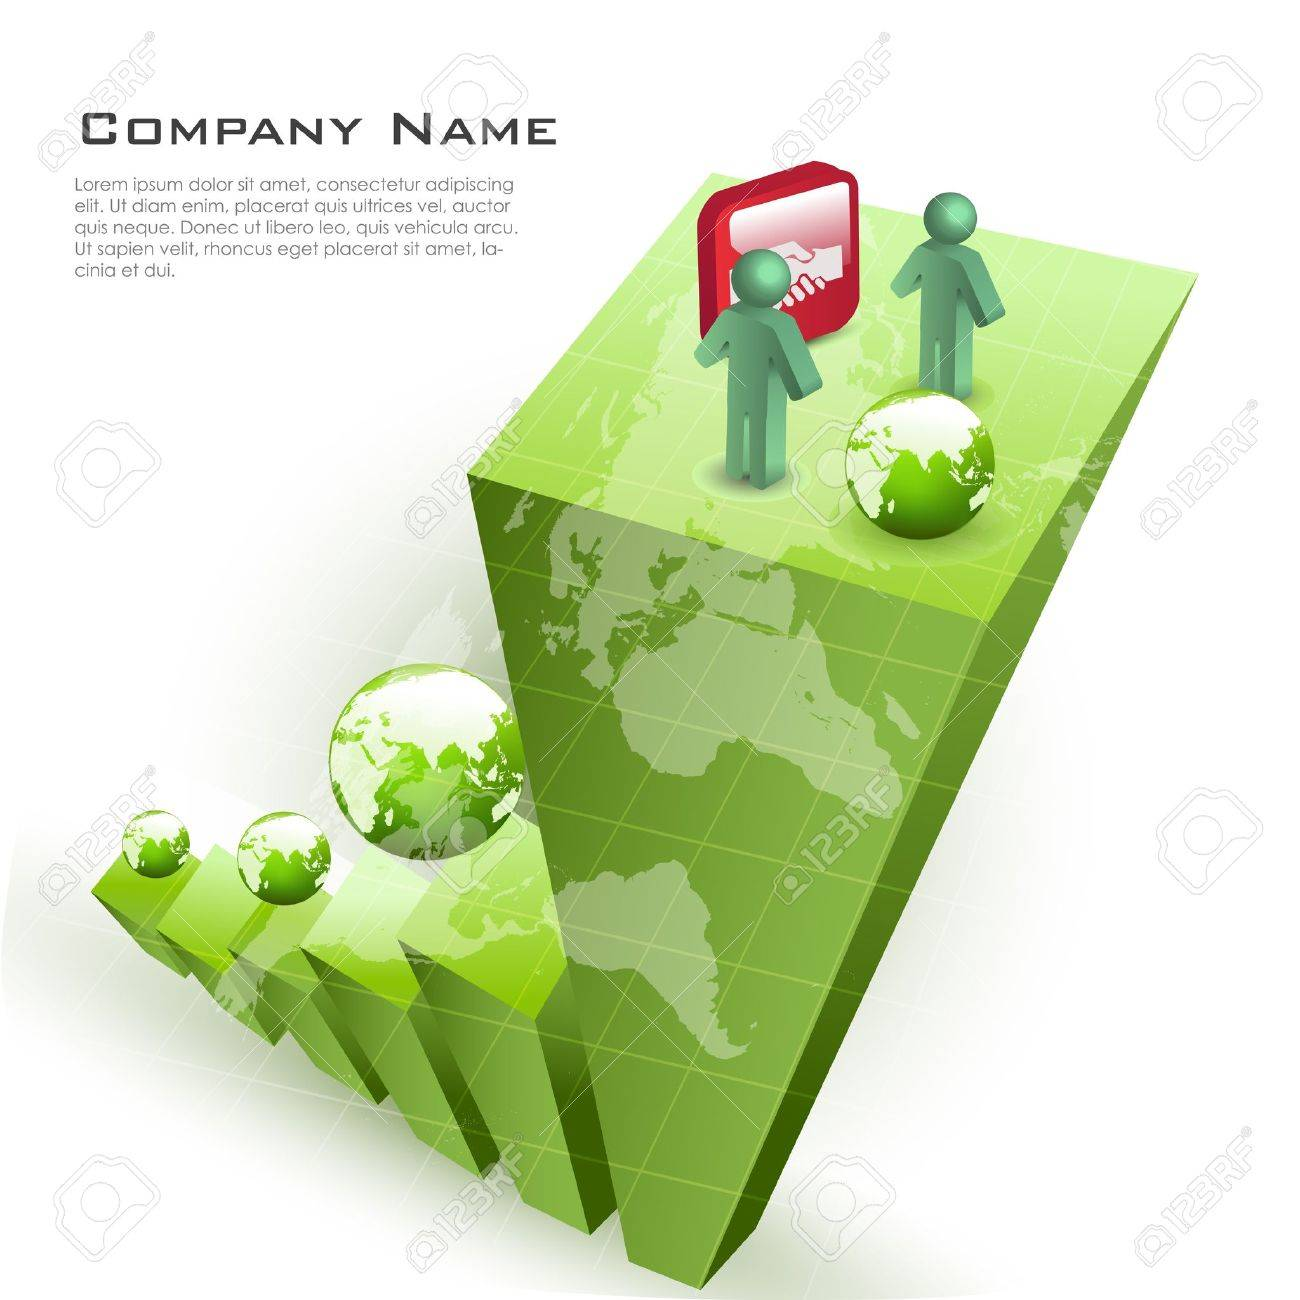 illustration of business card with globe on white background Stock Vector - 8302886